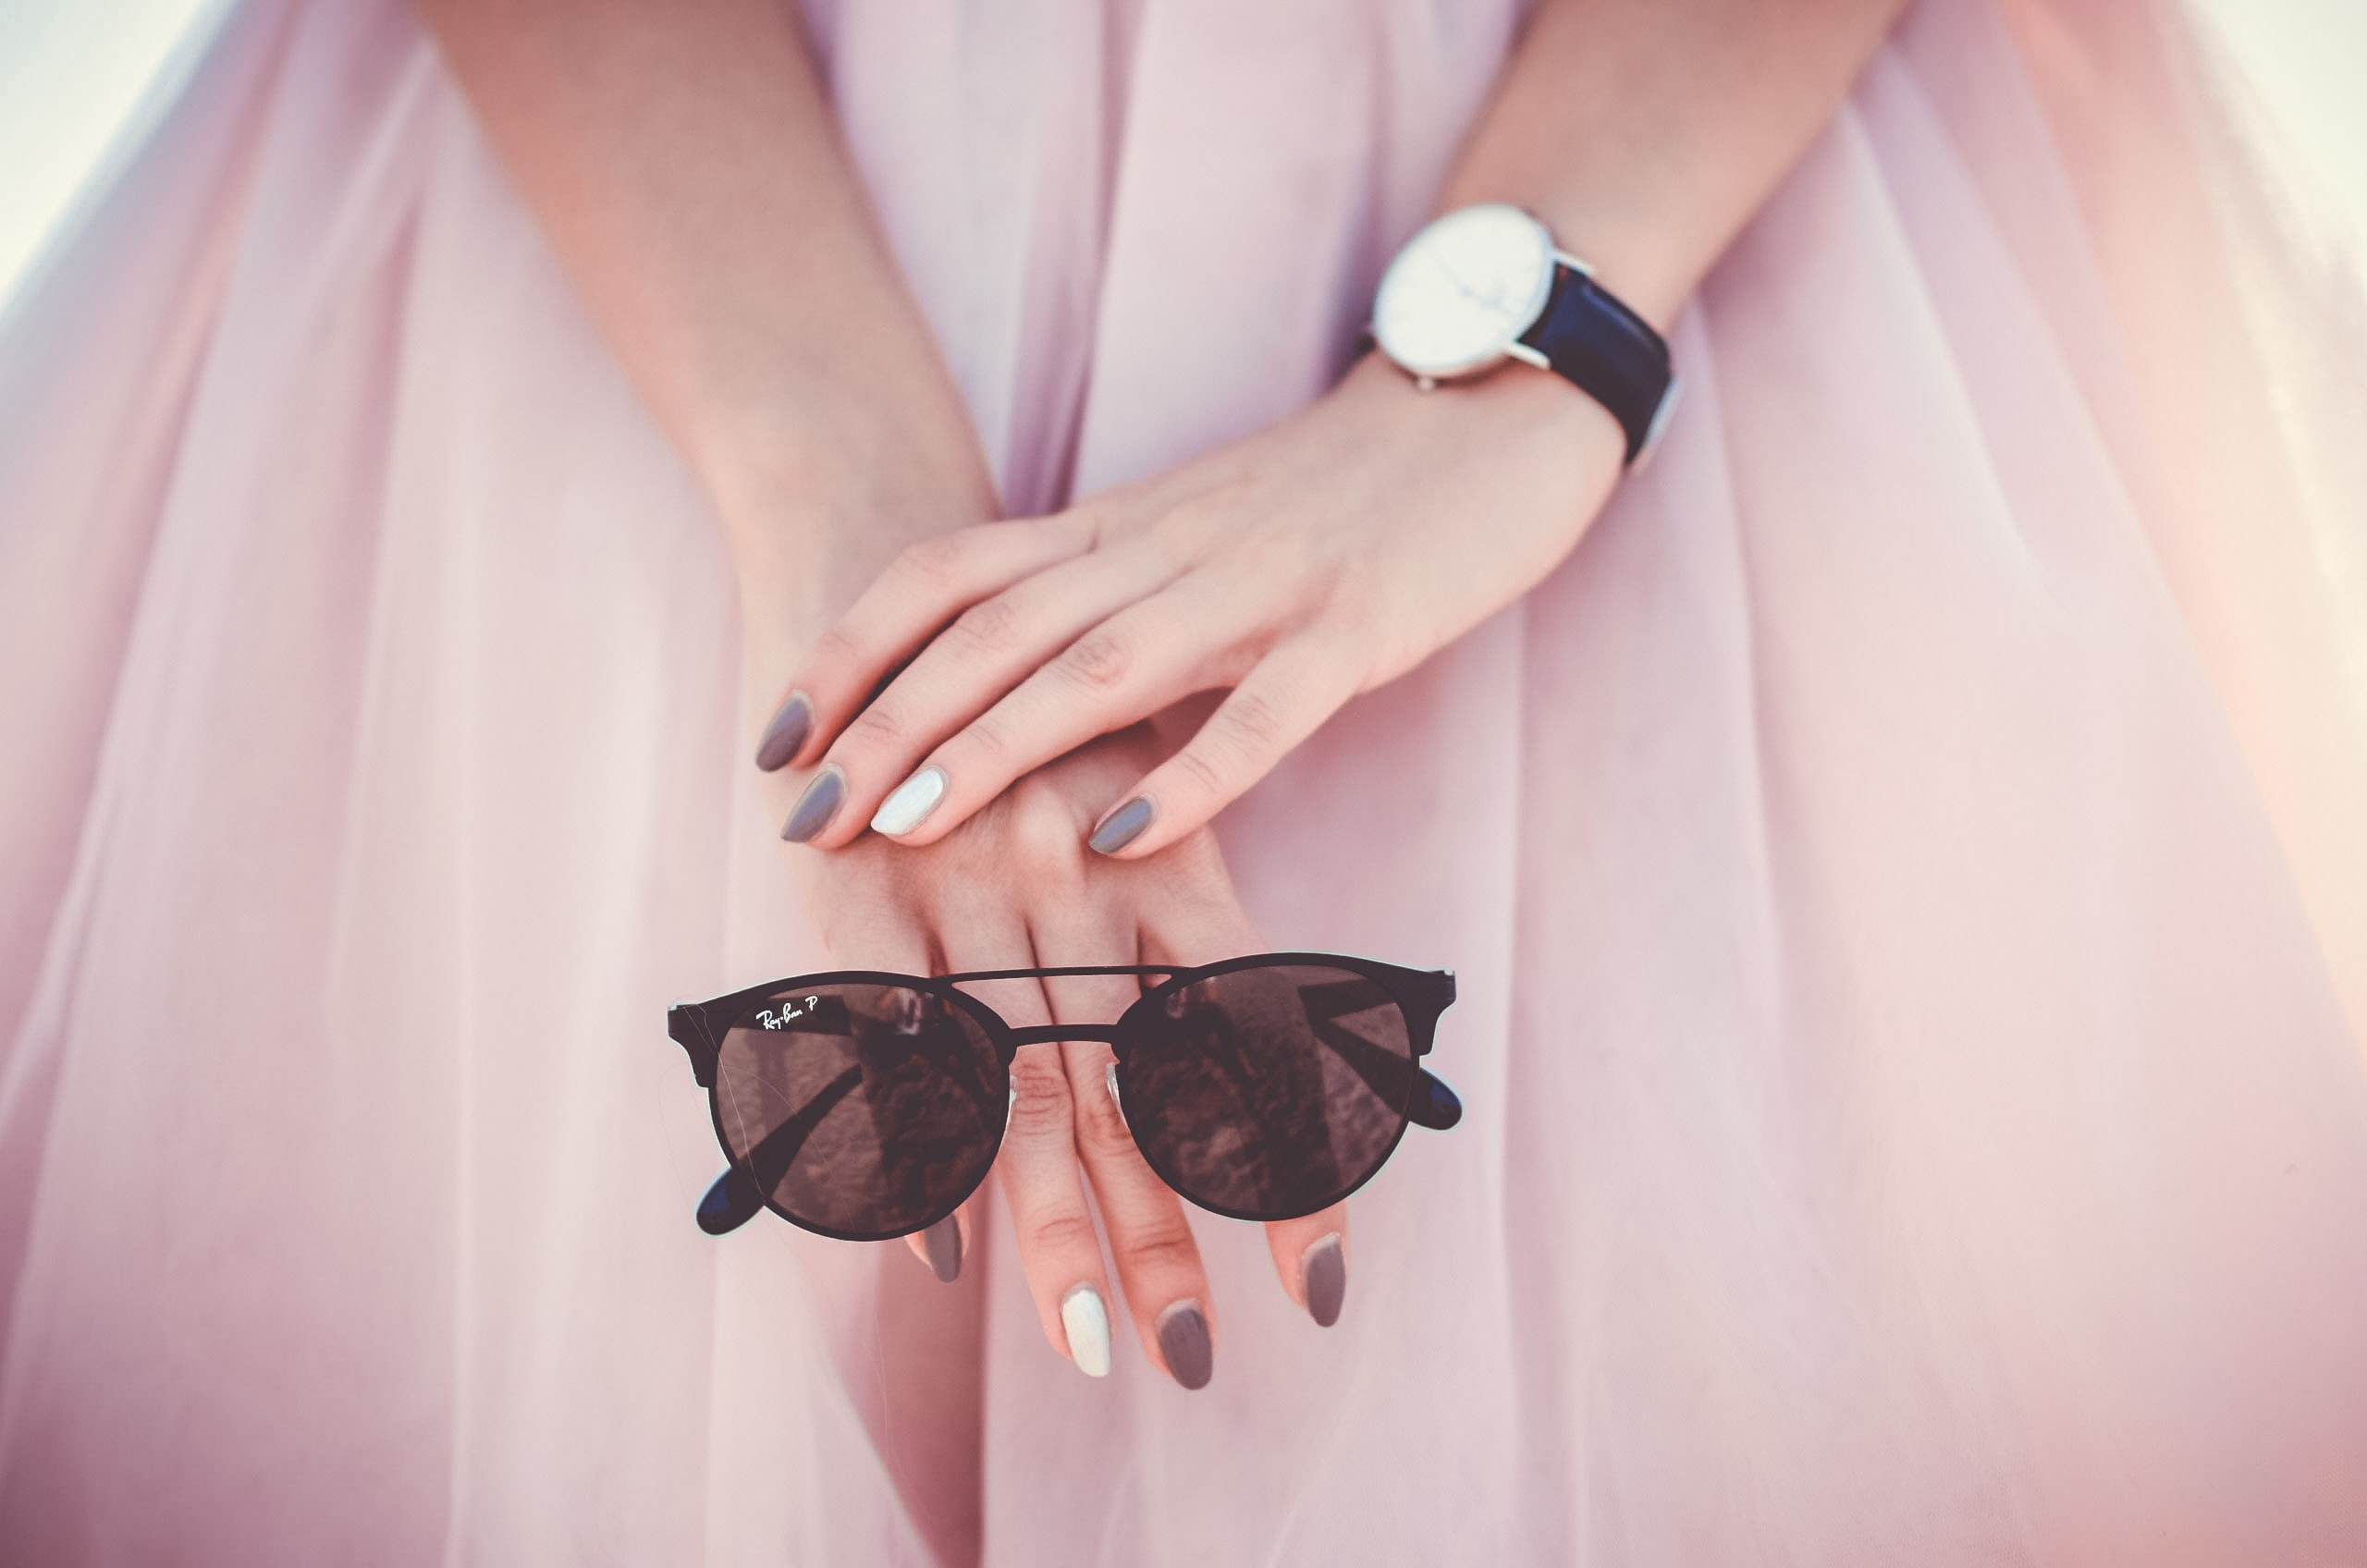 A close-up of a woman's hands with colored nails holding a pair of sunglasses.